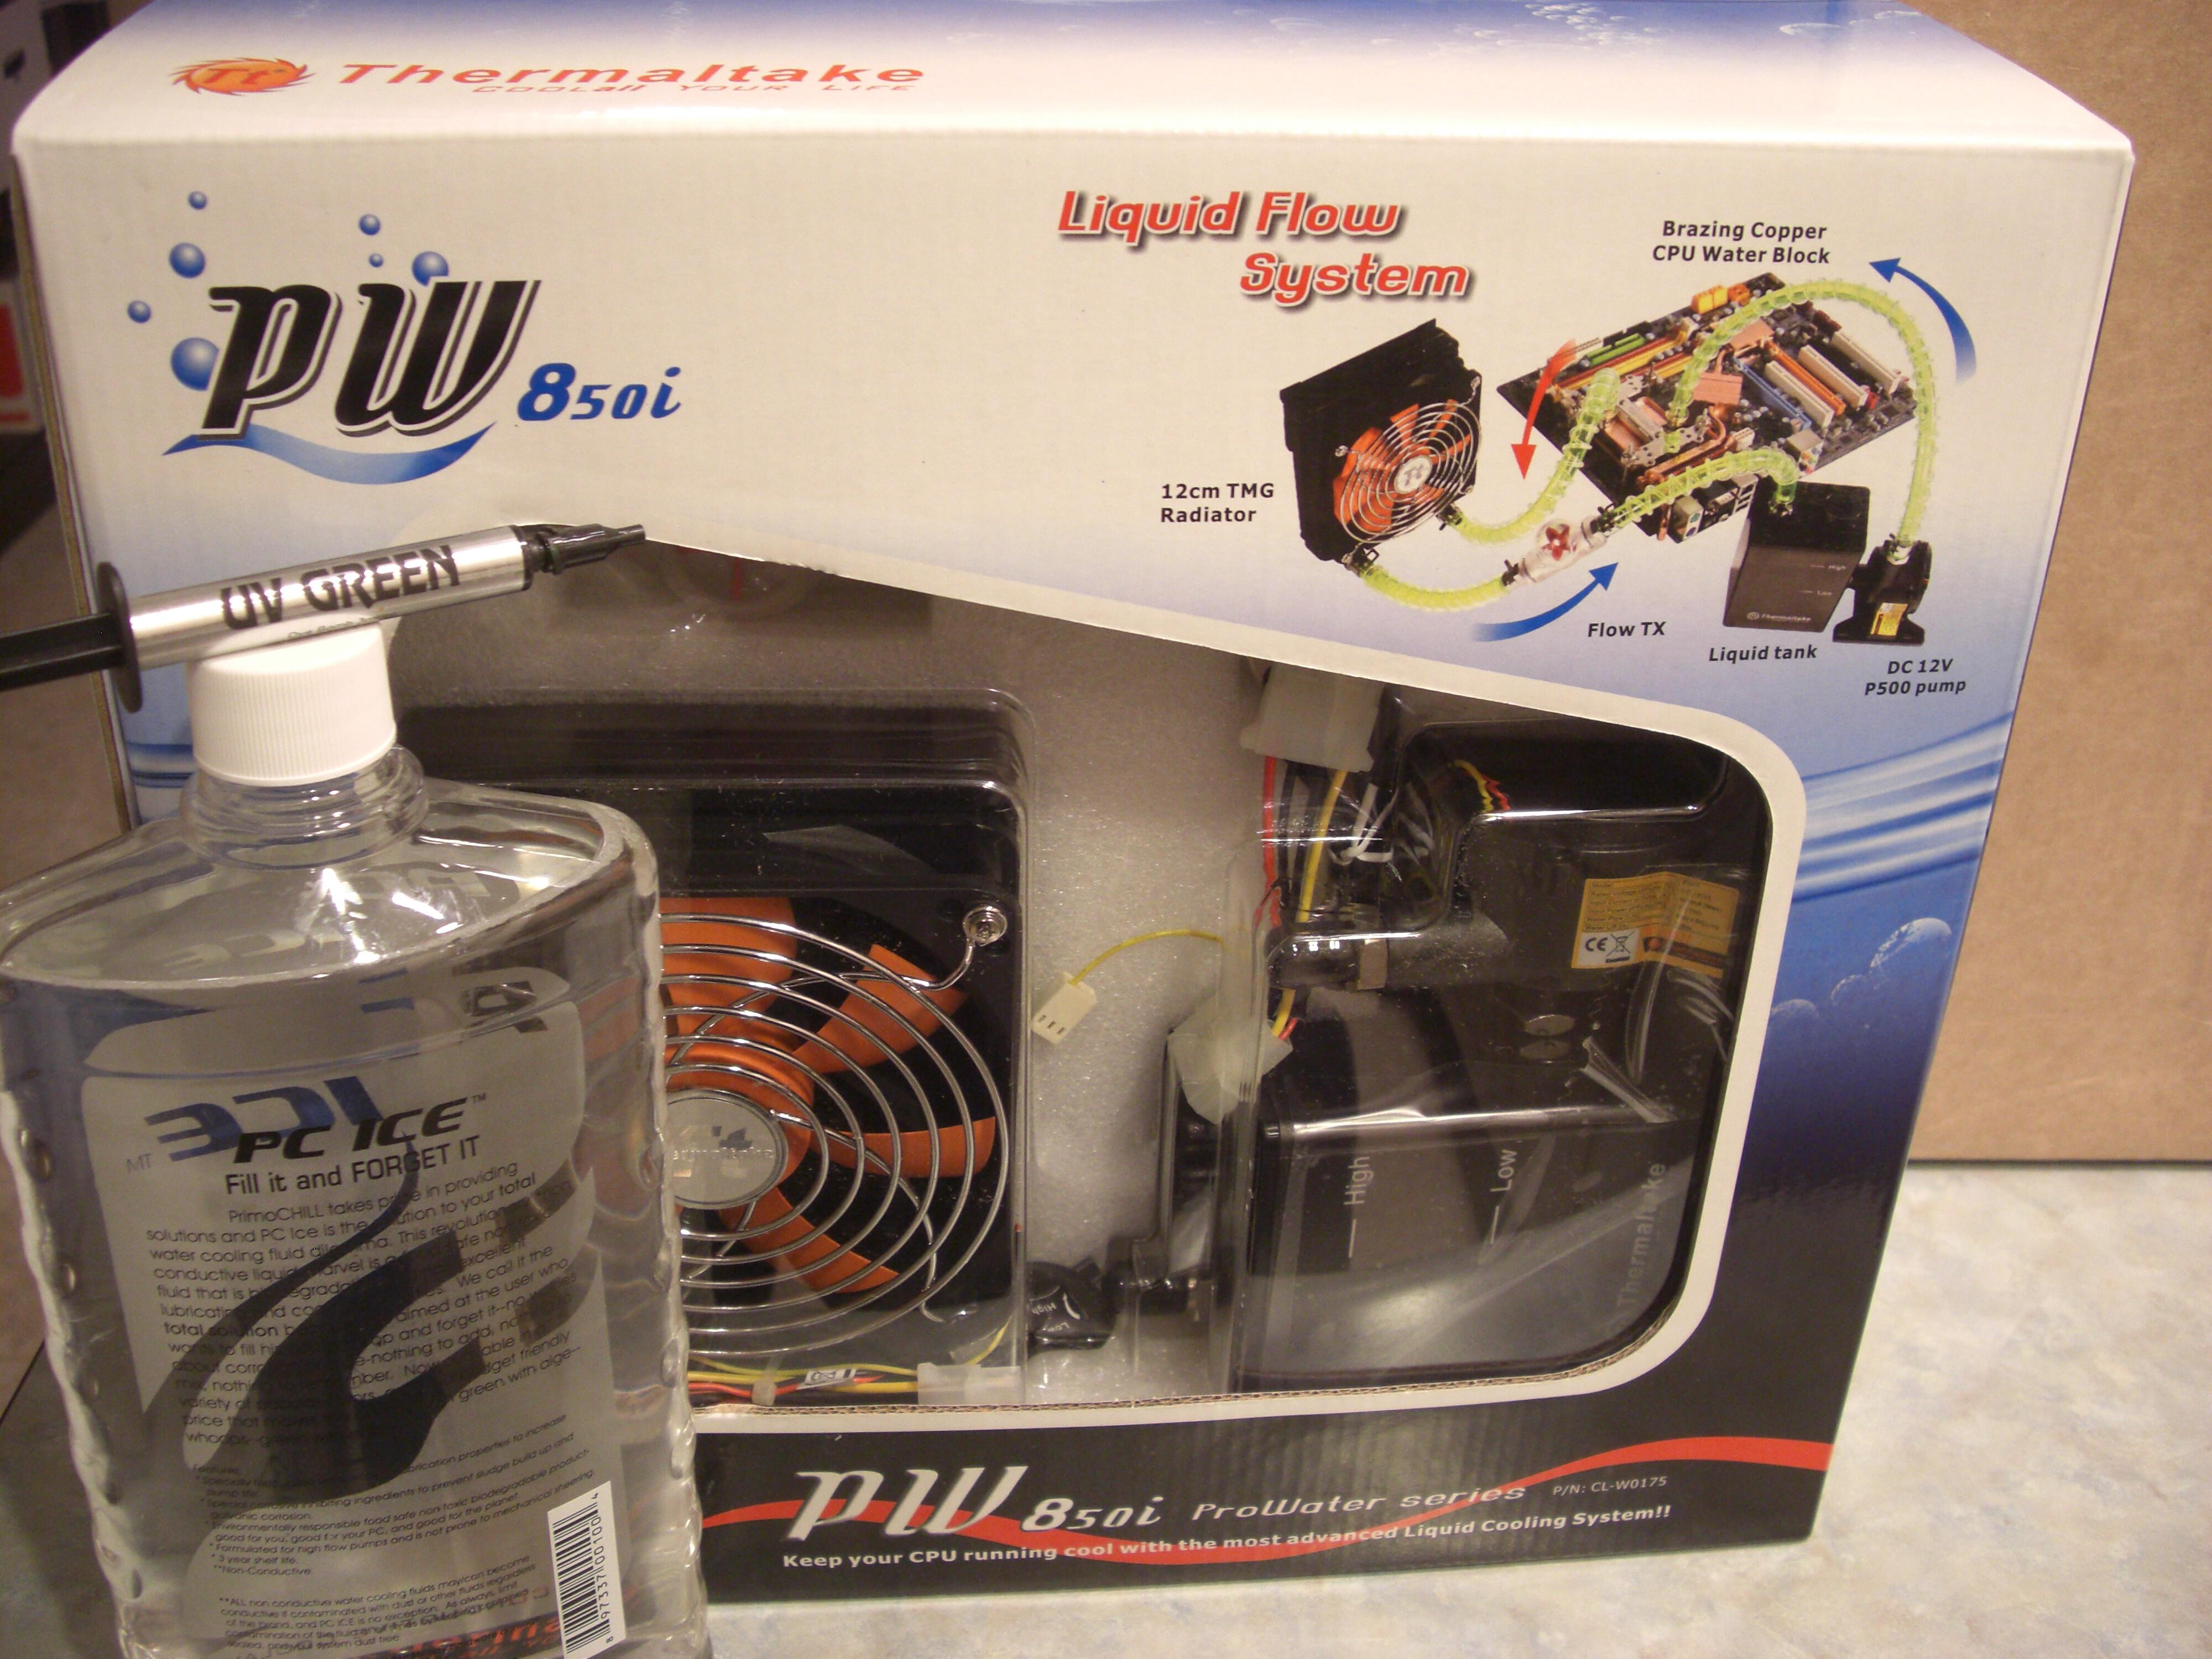 Thermaltake ProWater 850i Liquid Cooling System with PrimoChill PC ICE